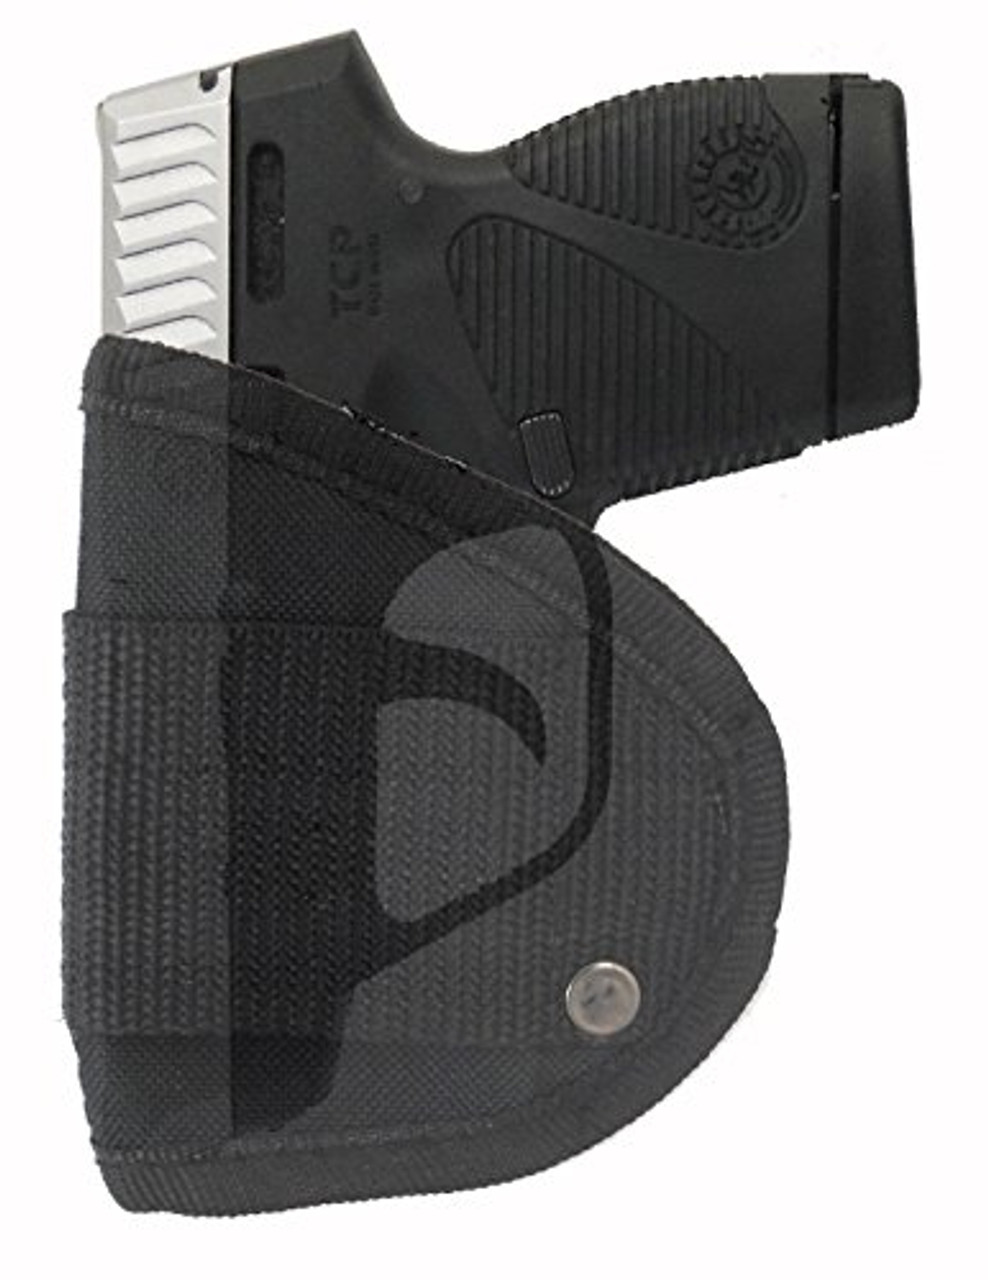 Taurus PT732 and PT738 Custom Fit Inside Waistband Easy Draw Woven Poly Comfort Holster by Garrison Grip IWB (S1)